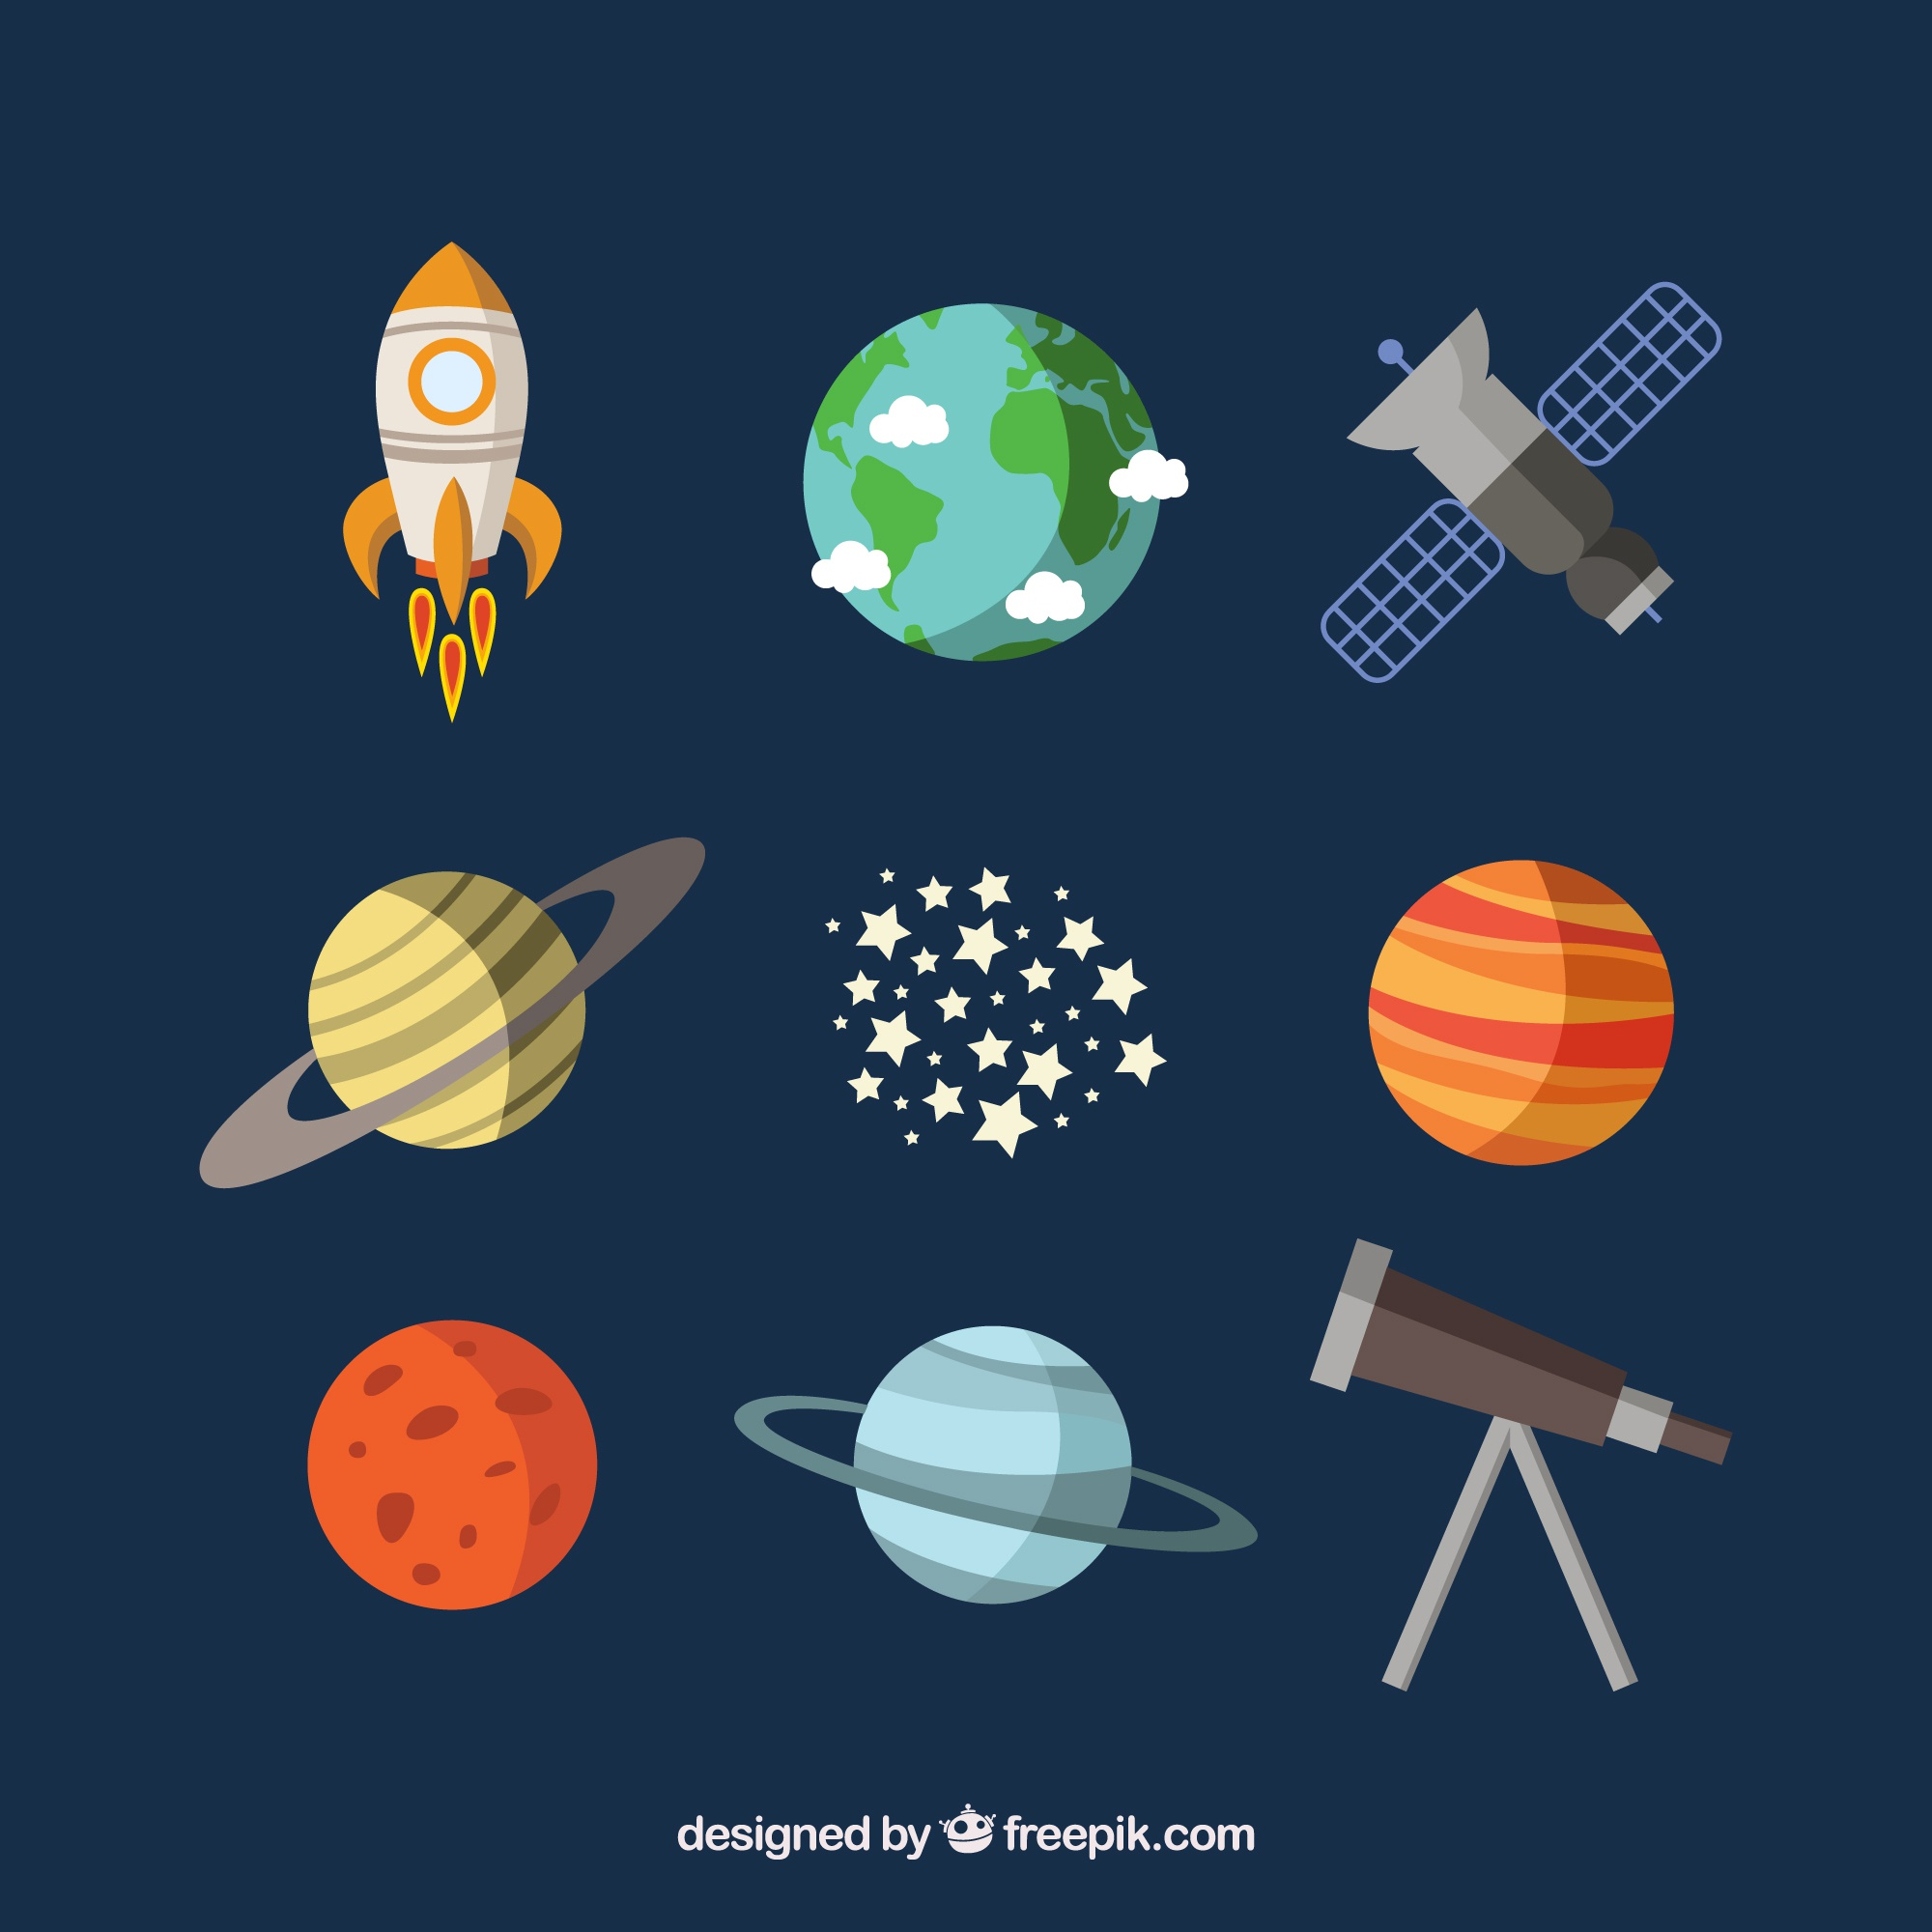 Planets, a satellite and a telescope